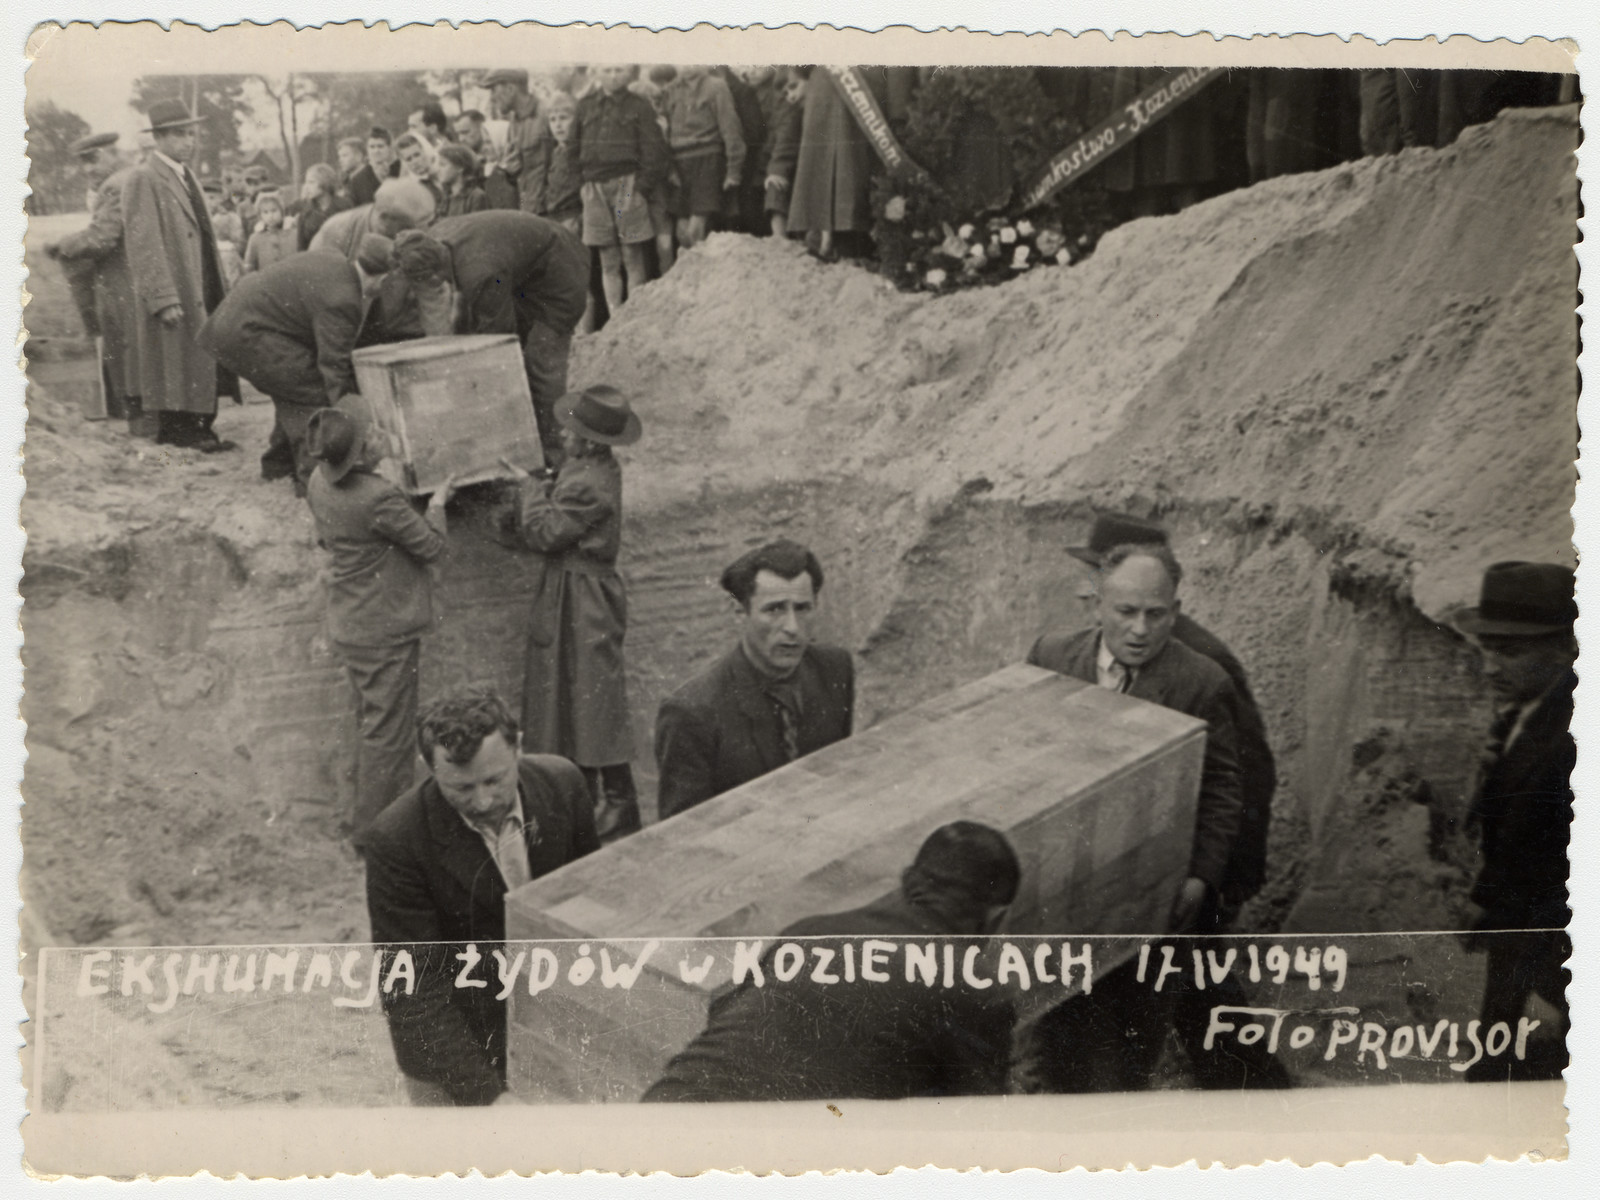 Survivors from Kozienice exhume and rebury victims killed by the Nazis.